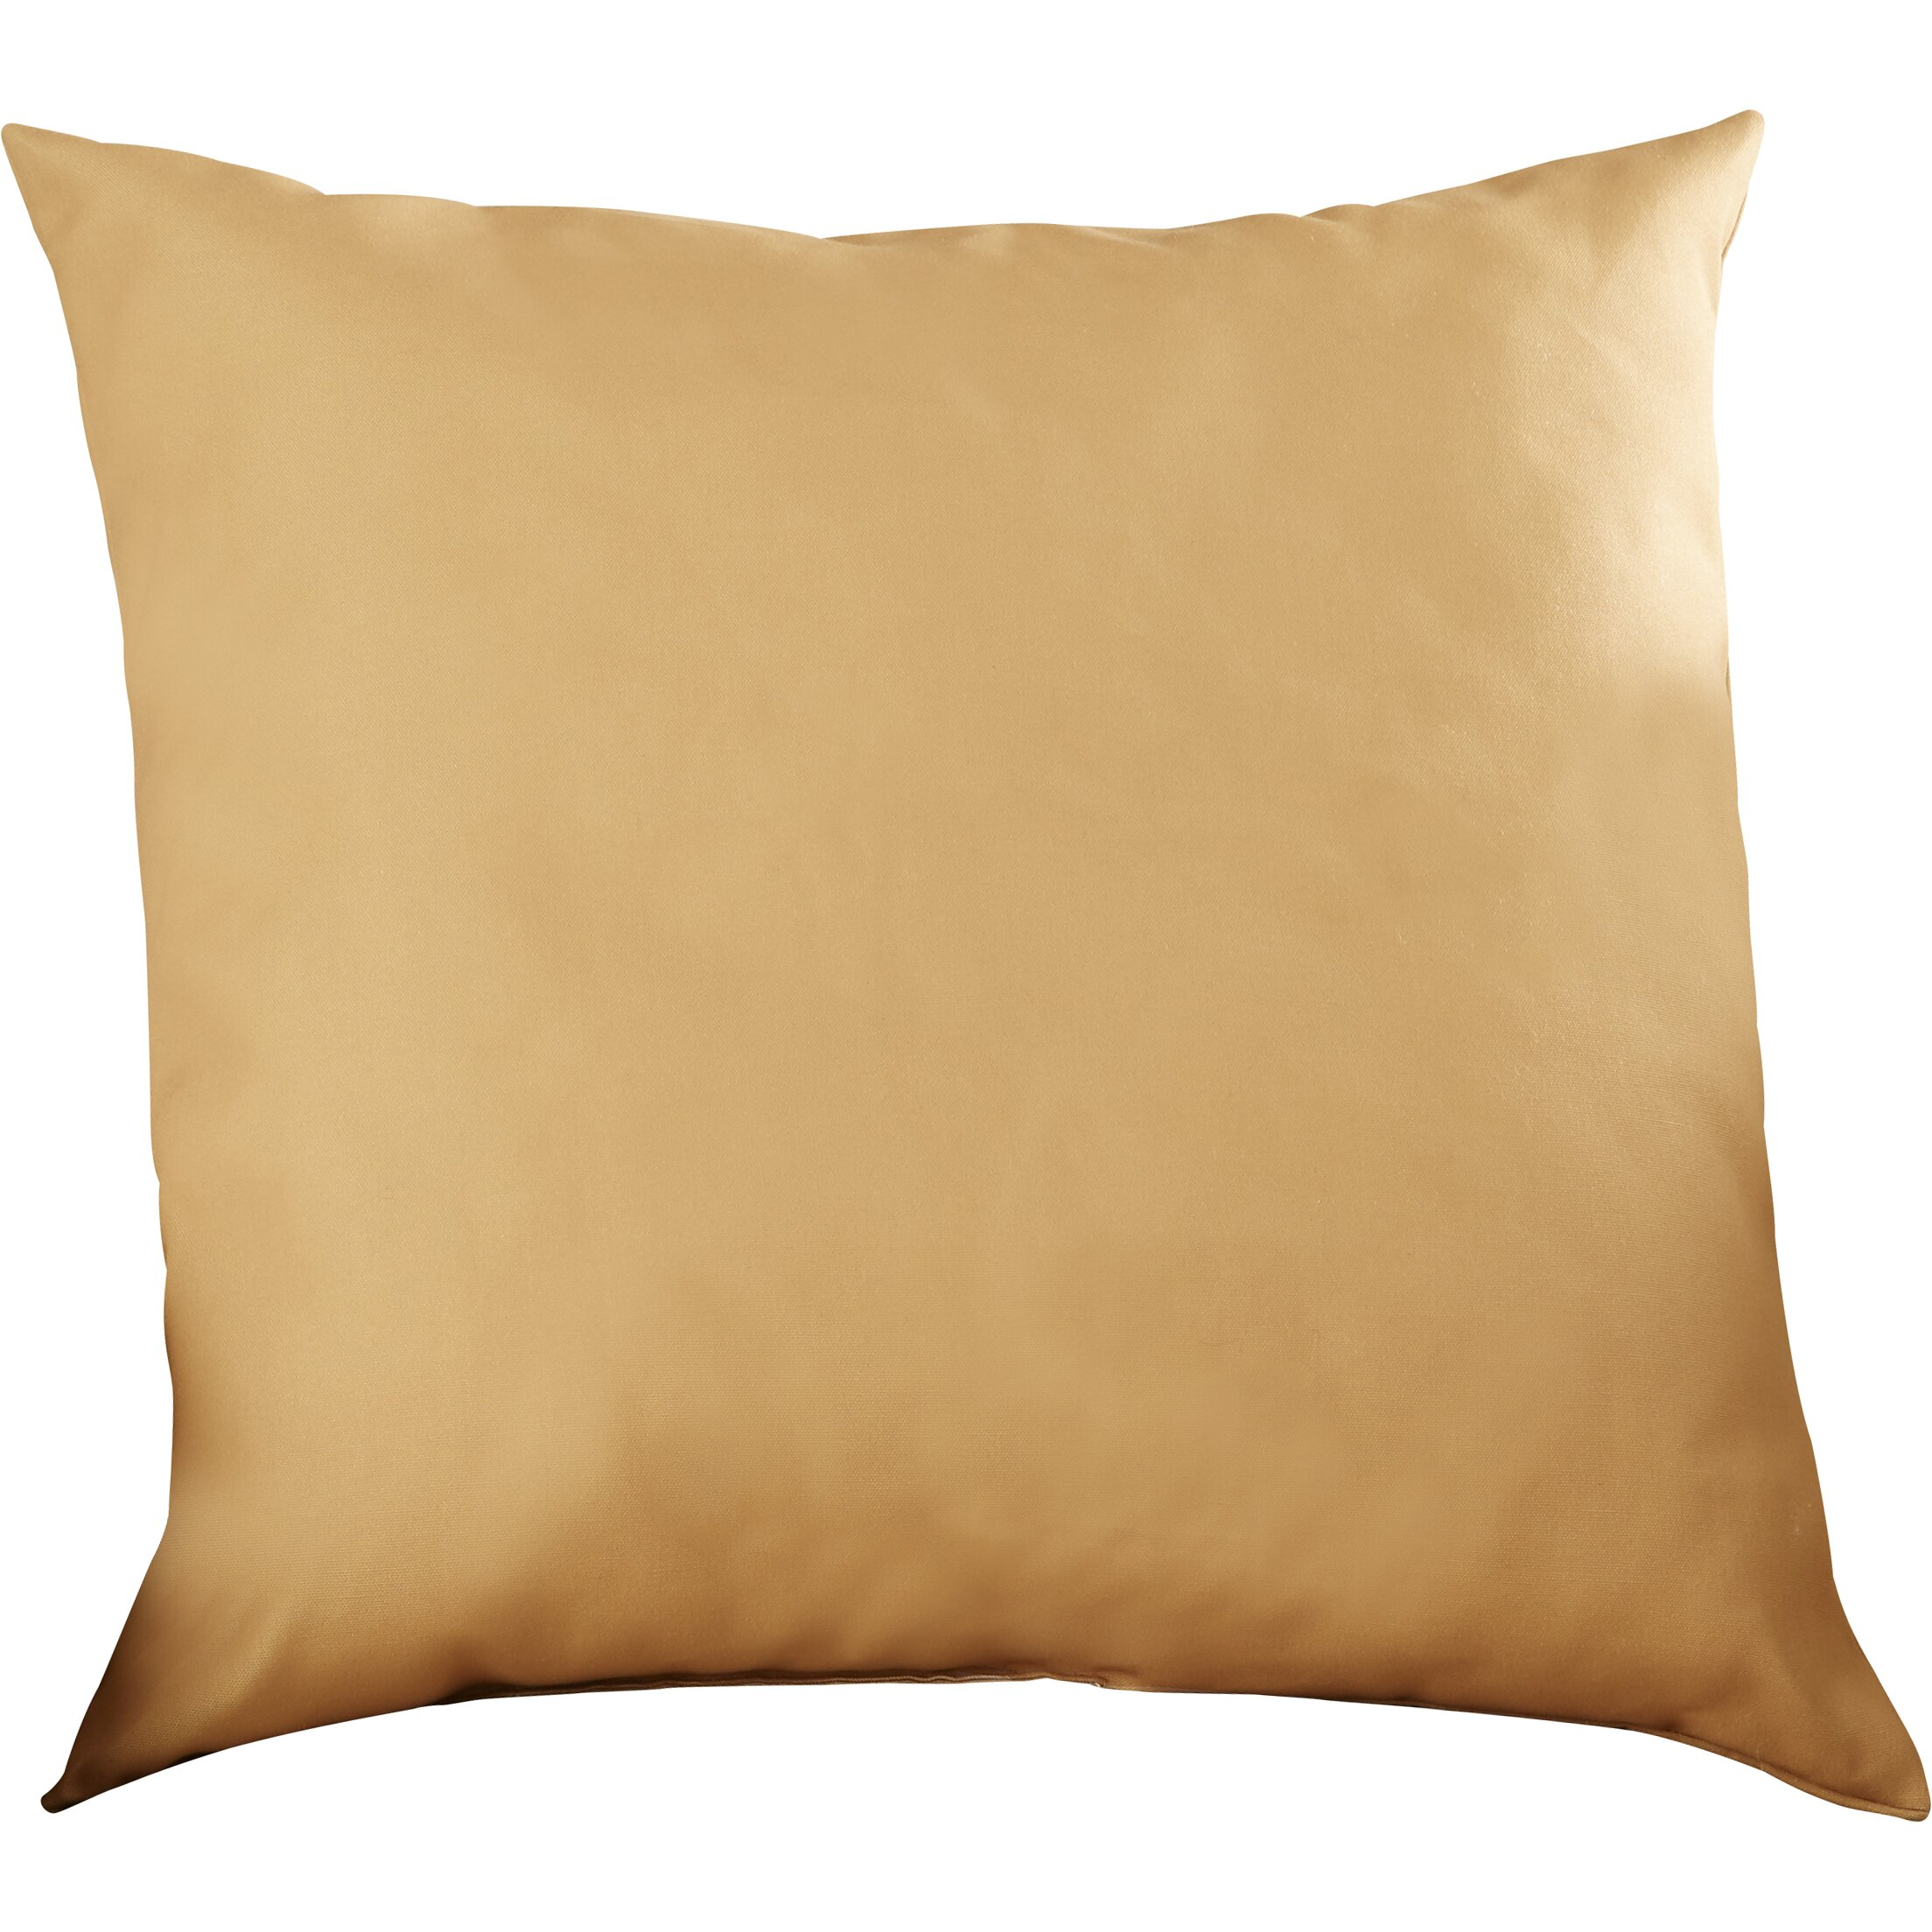 Alcott Hill Mallinson Decorative Throw Pillow & Reviews Wayfair.ca